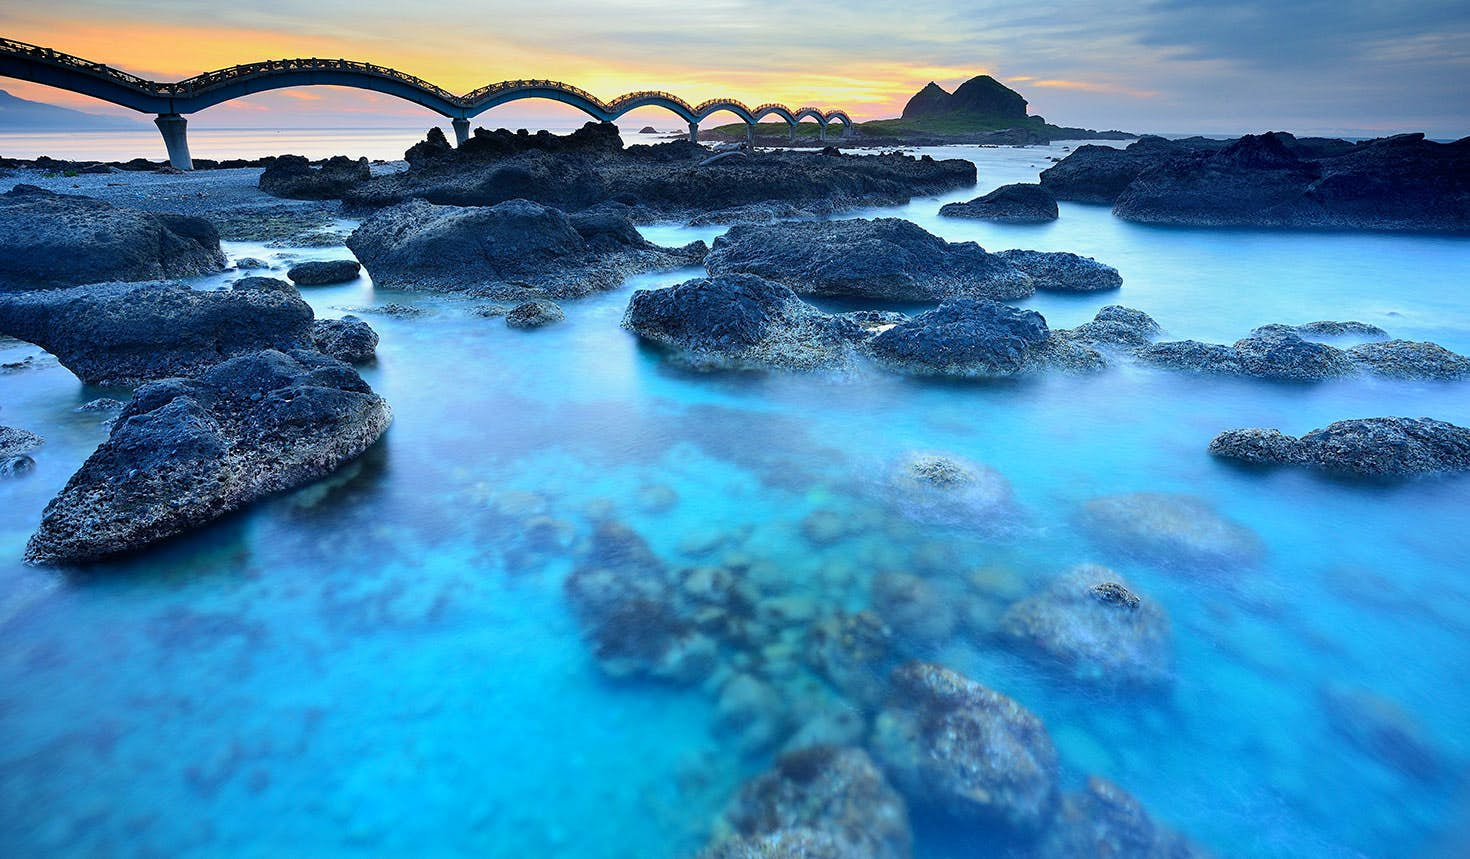 The 'dragon' footbridge that connects Sansiantai Island to Taitung County. Image: Anthony Ko / Getty Images